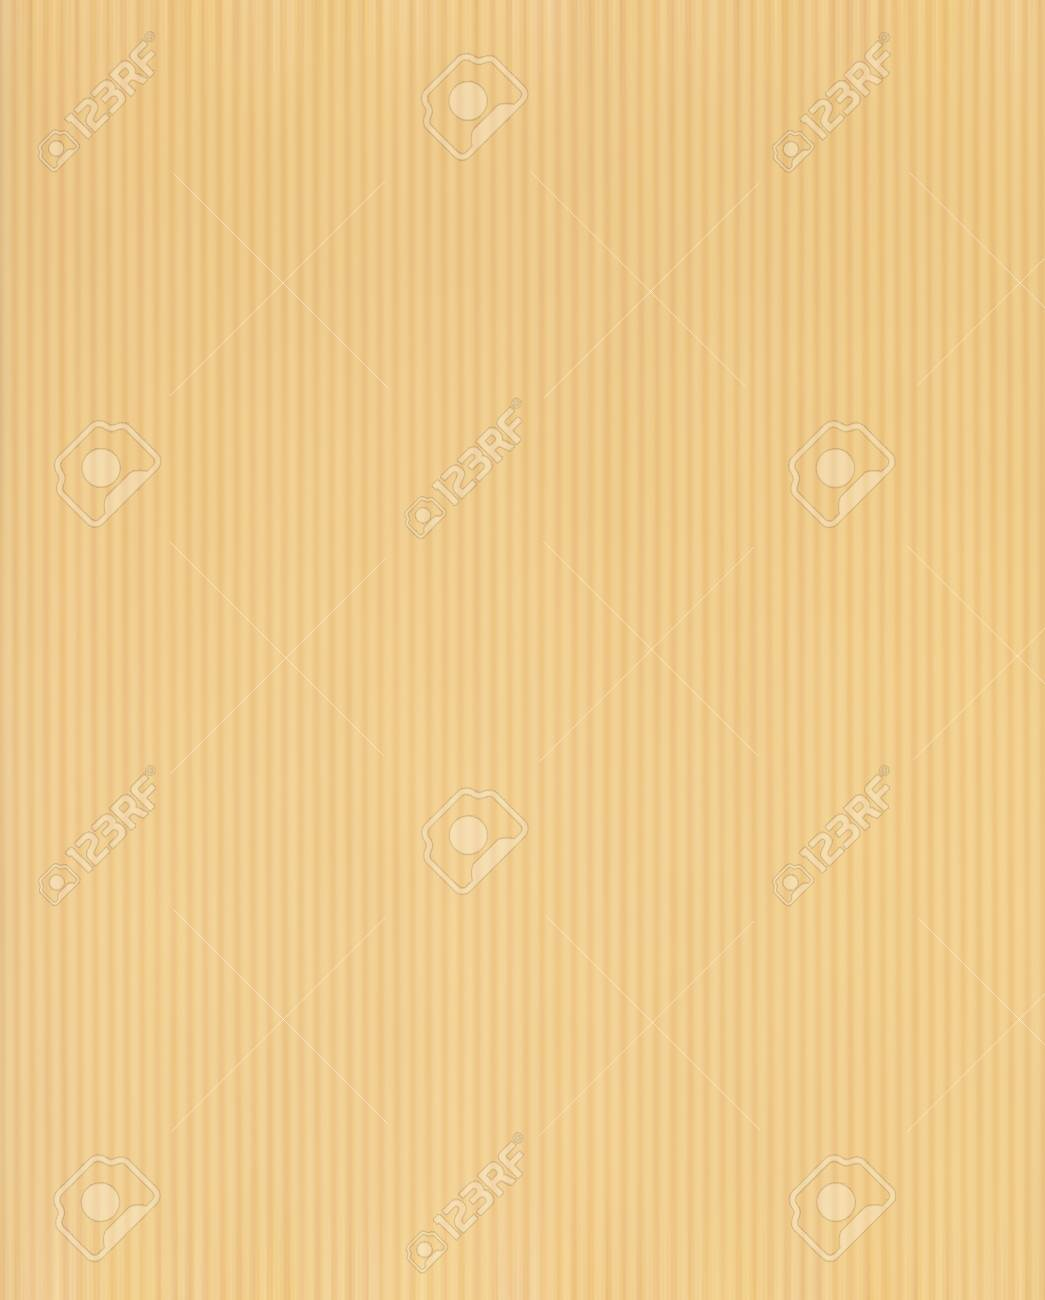 paper texture with stripes - 10790917